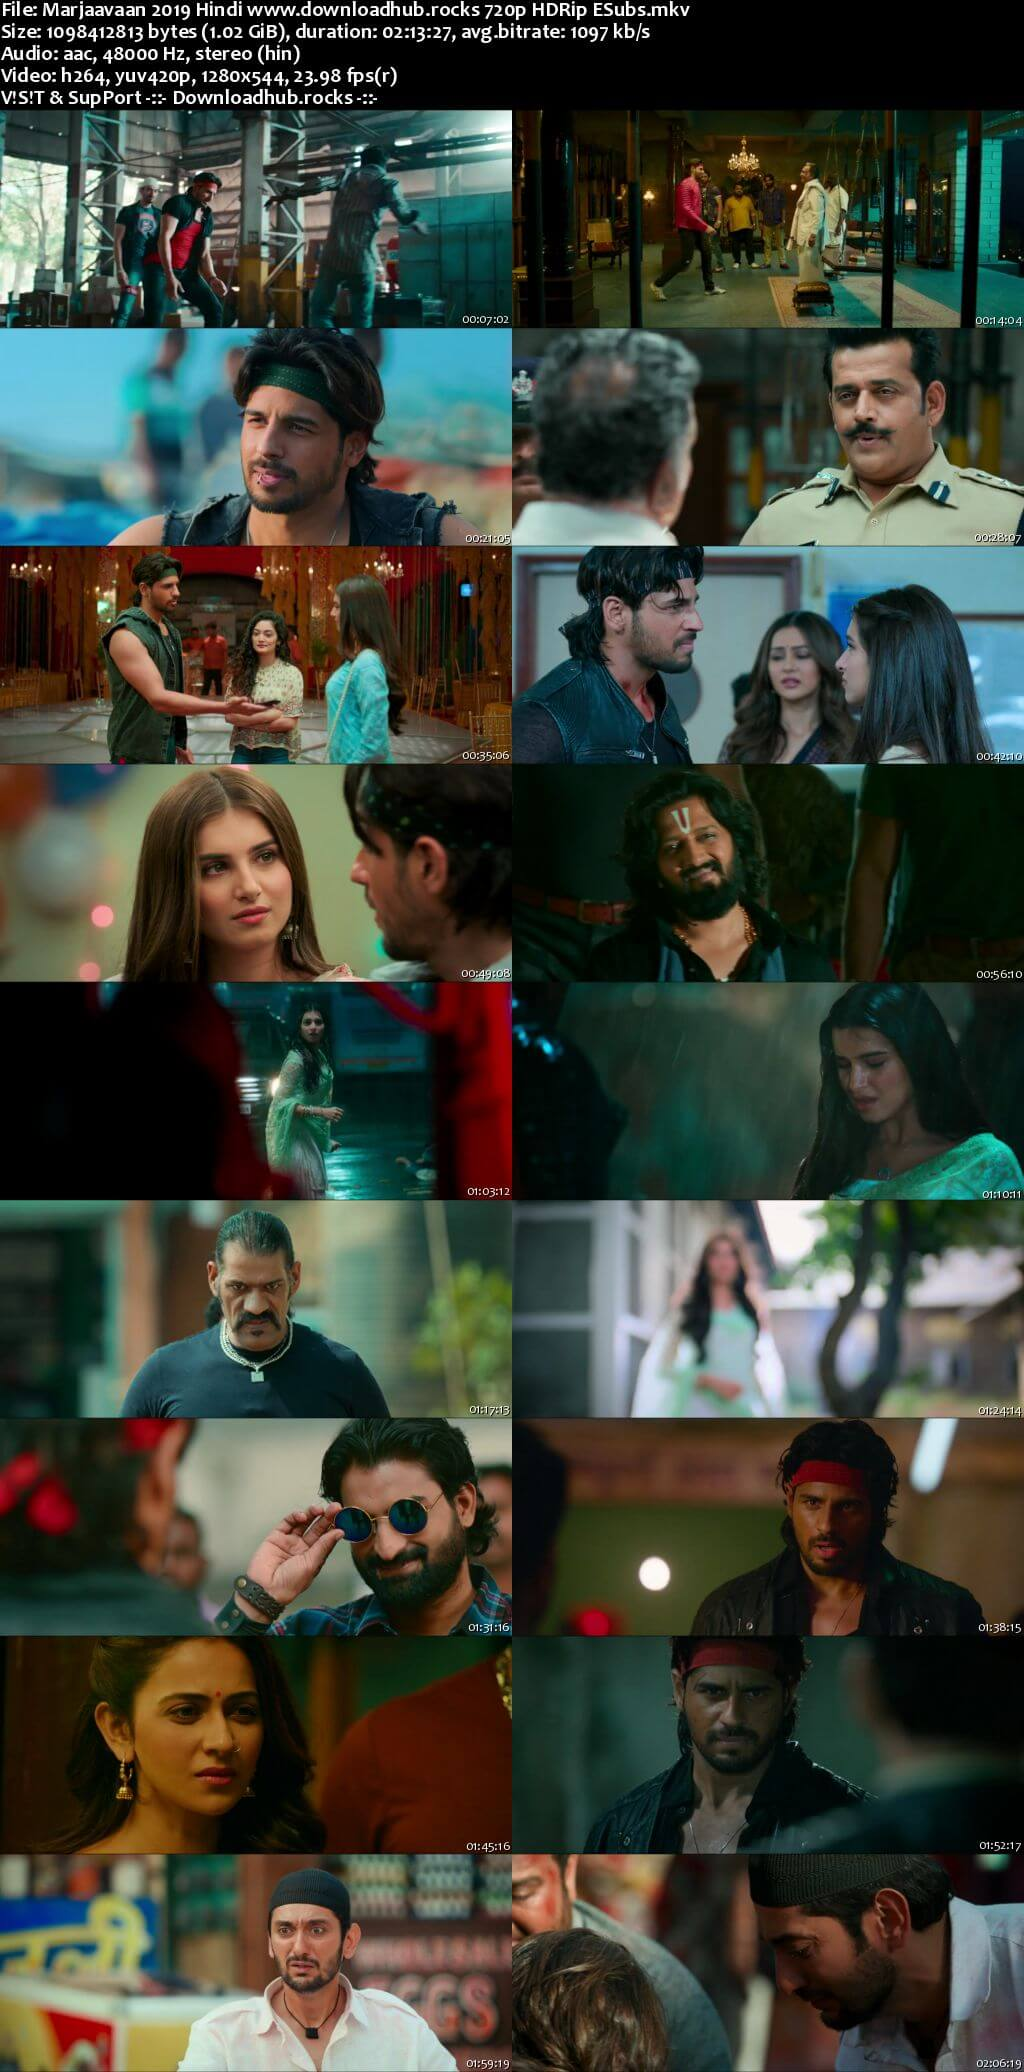 Marjaavaan 2019 Hindi 720p HDRip ESubs